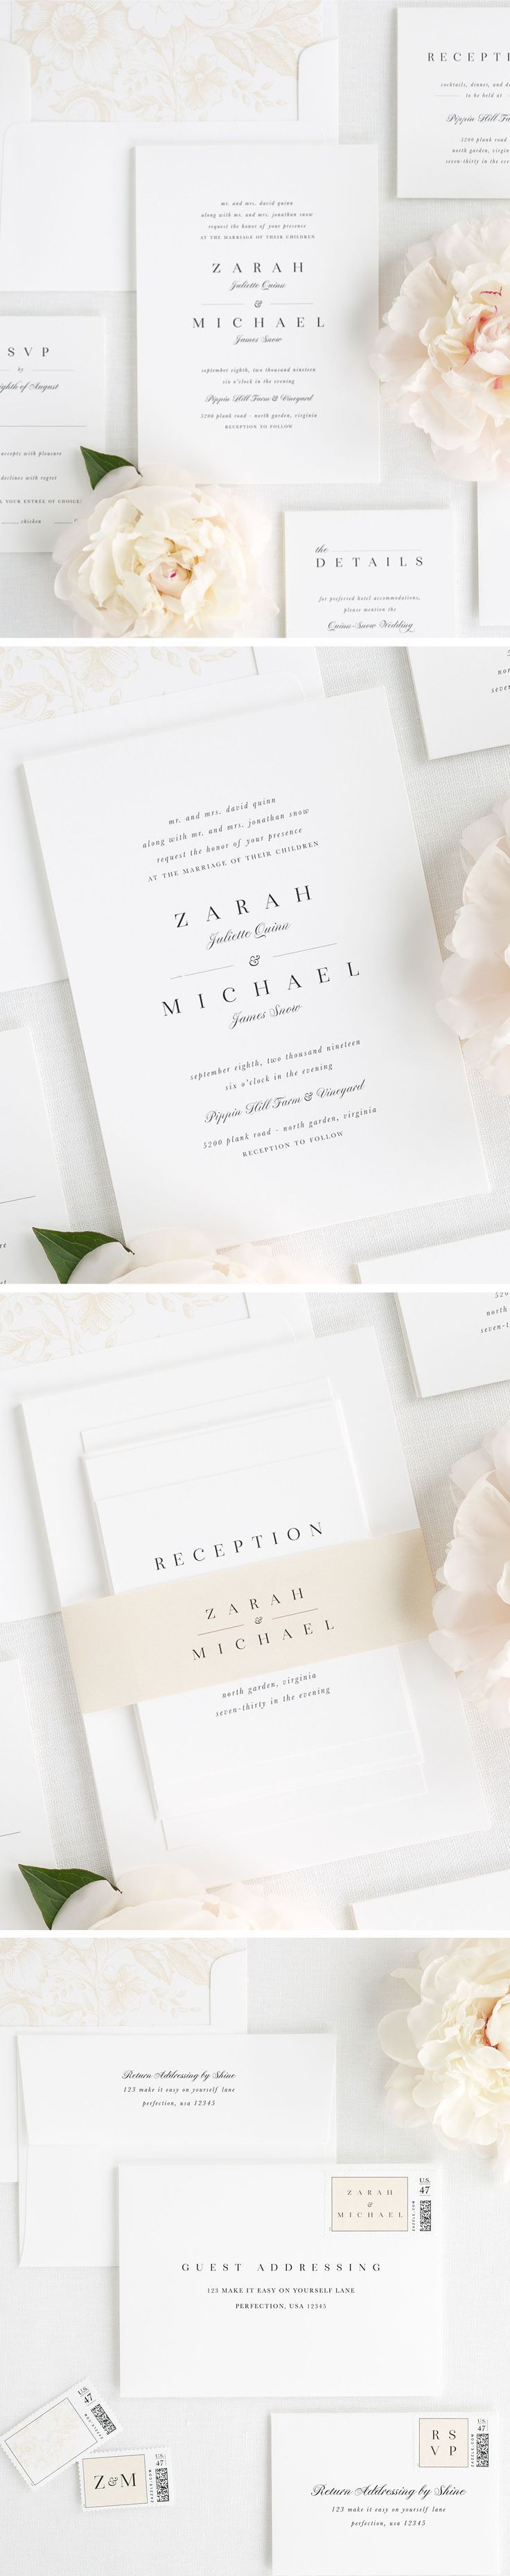 We are all about details! This beautiful suite checks off all the requirements of a classic and timeless design. We love the large sophisticated first names paired with a romantic script for middle and last names - you get the best of both worlds! Shop this look here!